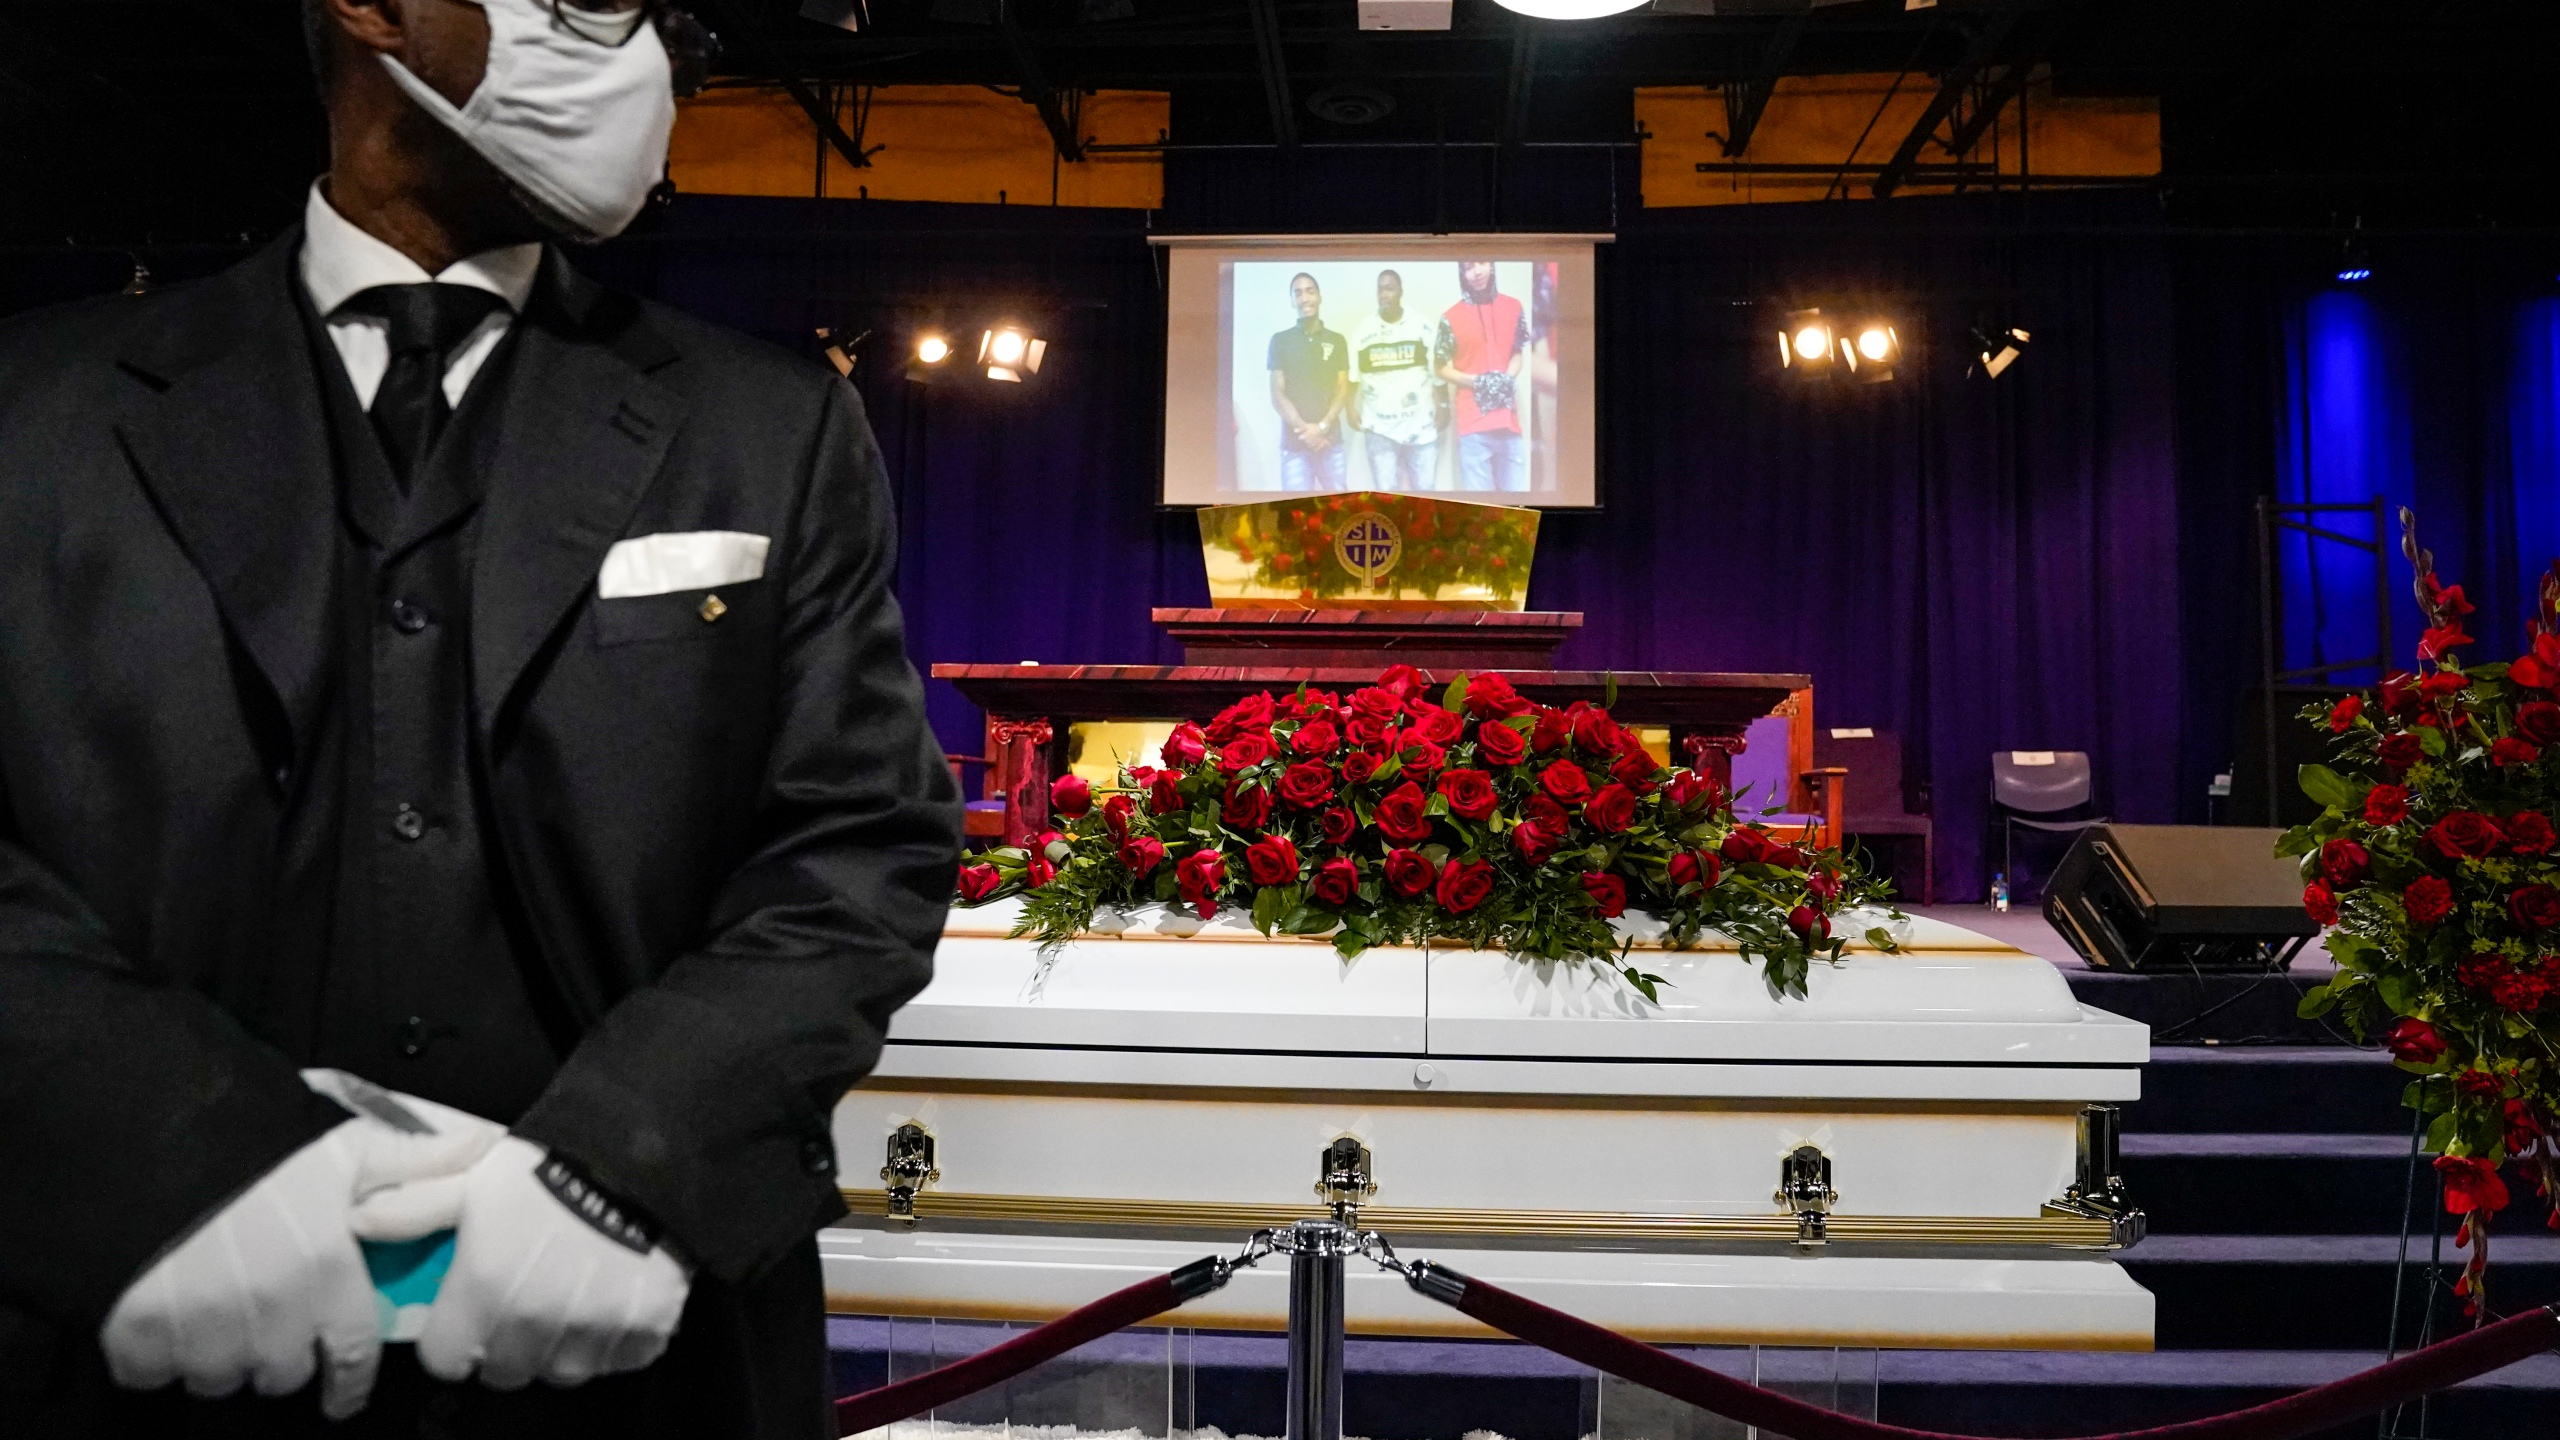 The casket of Daunte Wright rests in place before funeral services at Shiloh Temple International Ministries in Minneapolis on April 22, 2021. (John Minchillo, Pool)